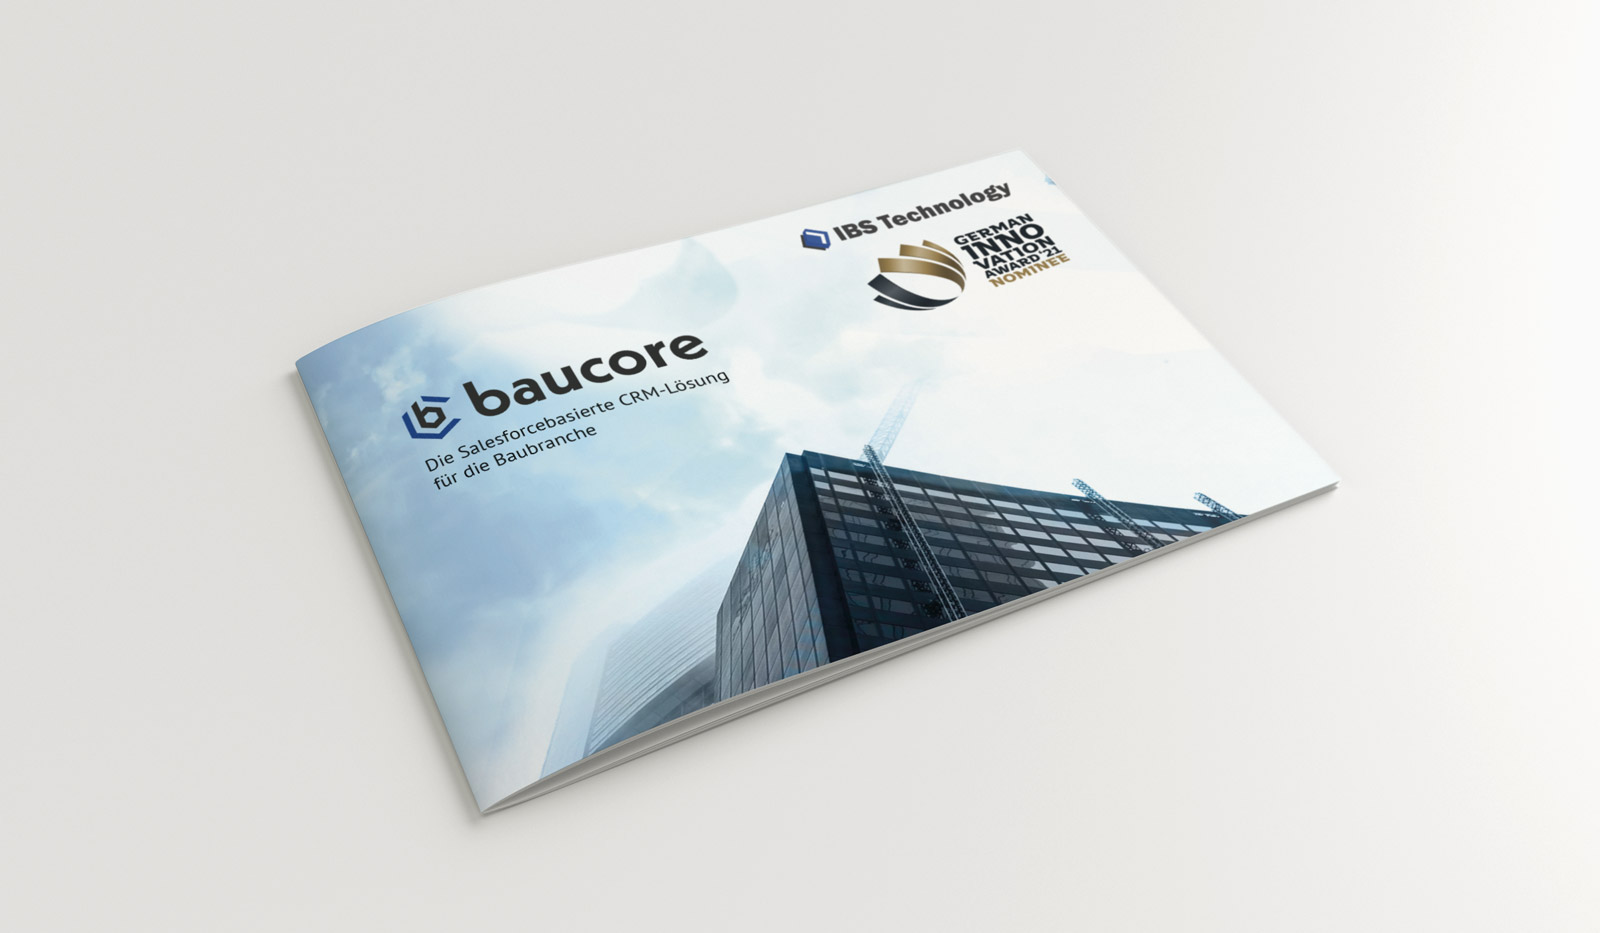 Whitepaper of Baucore by IBS Technology GmbH